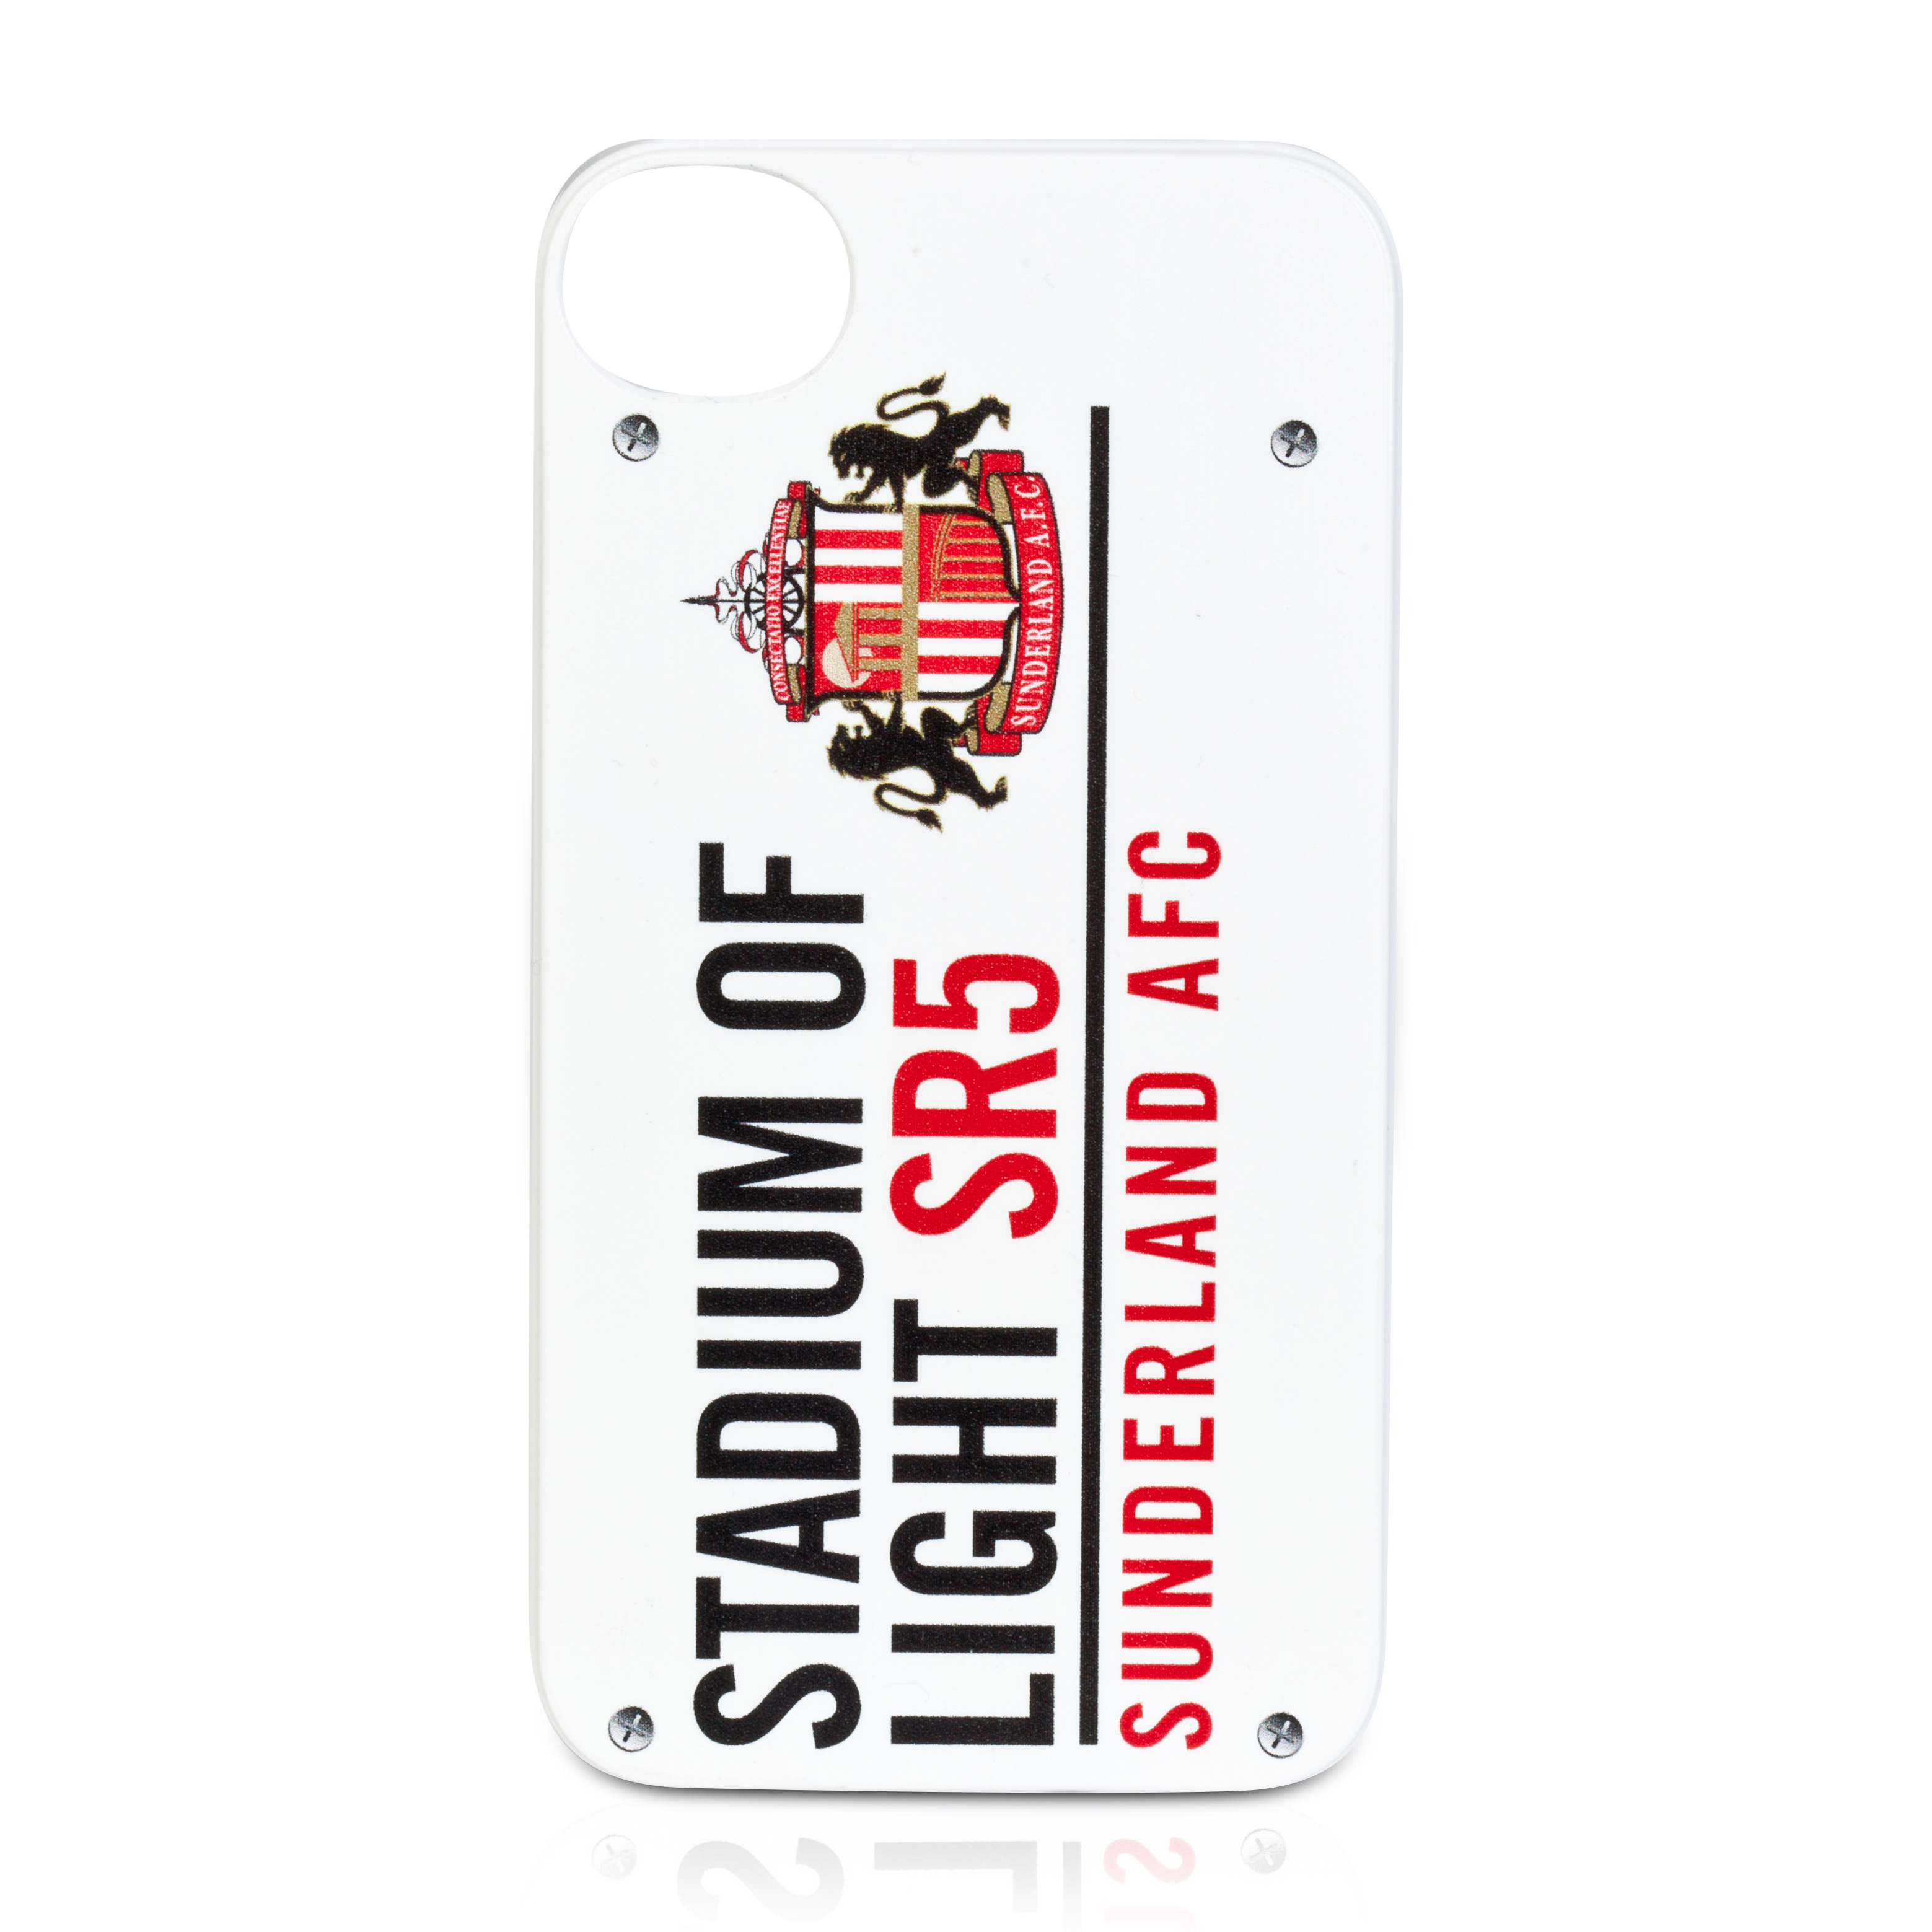 Sunderland iphone 4 Hard Case Cover